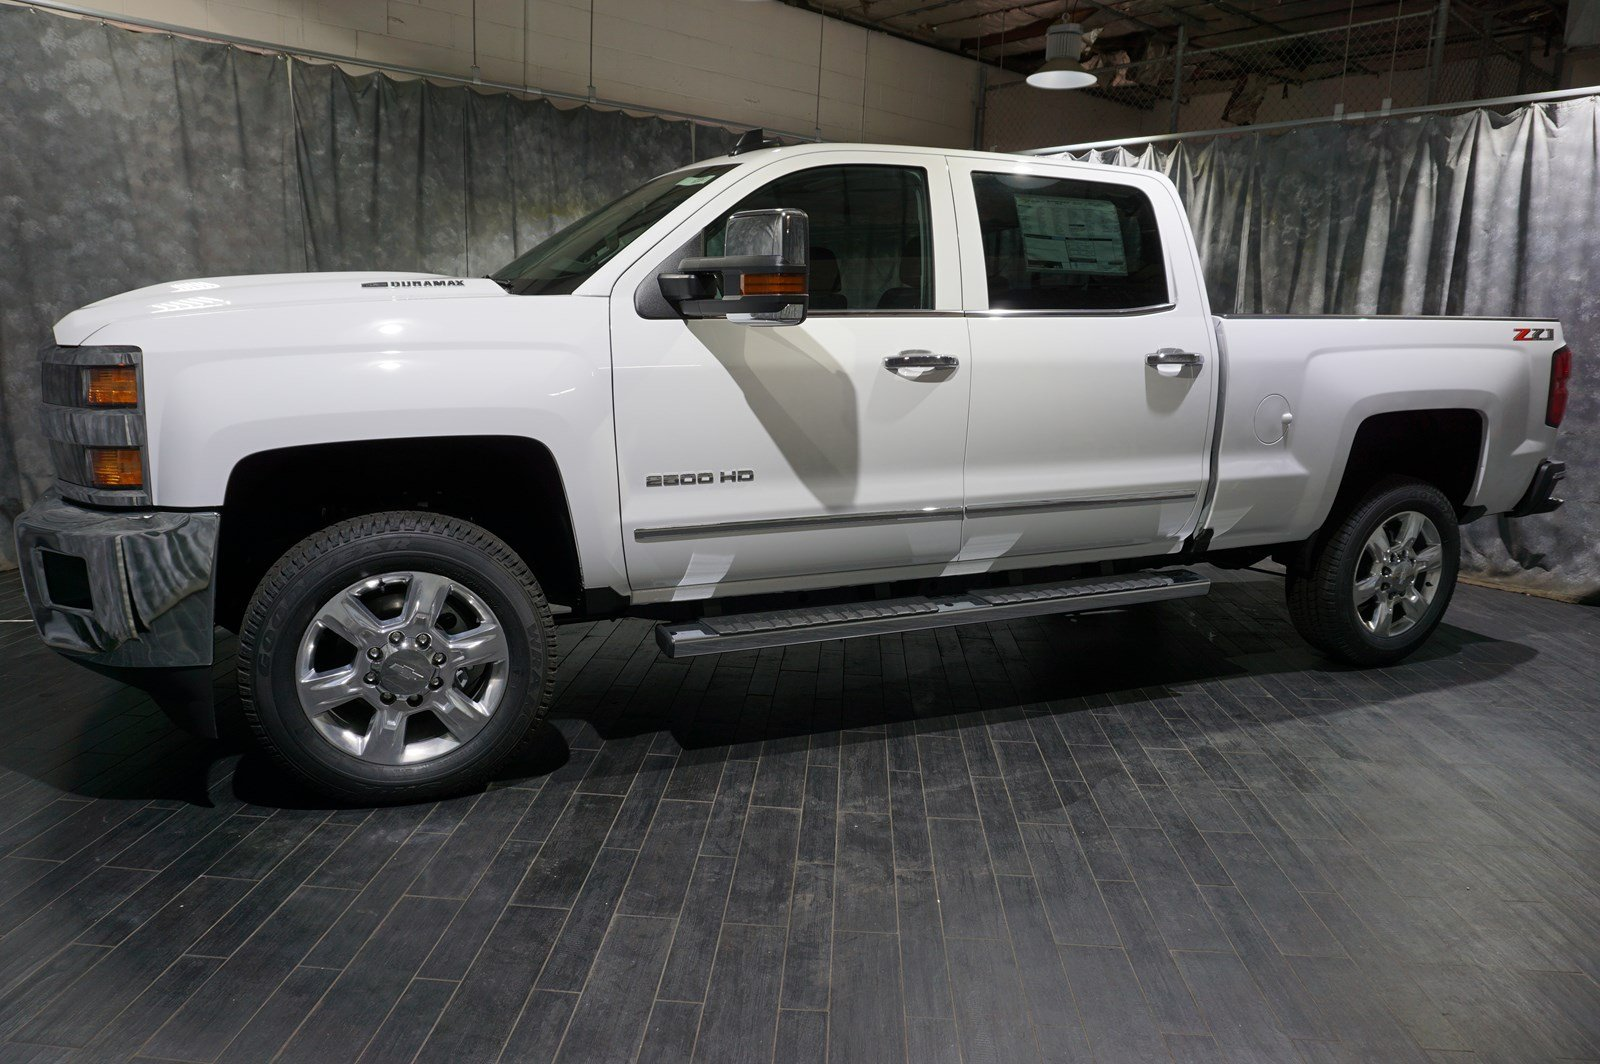 New 2019 Chevrolet Silverado 2500hd Ltz Crew Cab Pickup In Villa Tow Vehicle Alternator To Trailer Battery Wiring 7way Ford Truck Park 63854 Castle